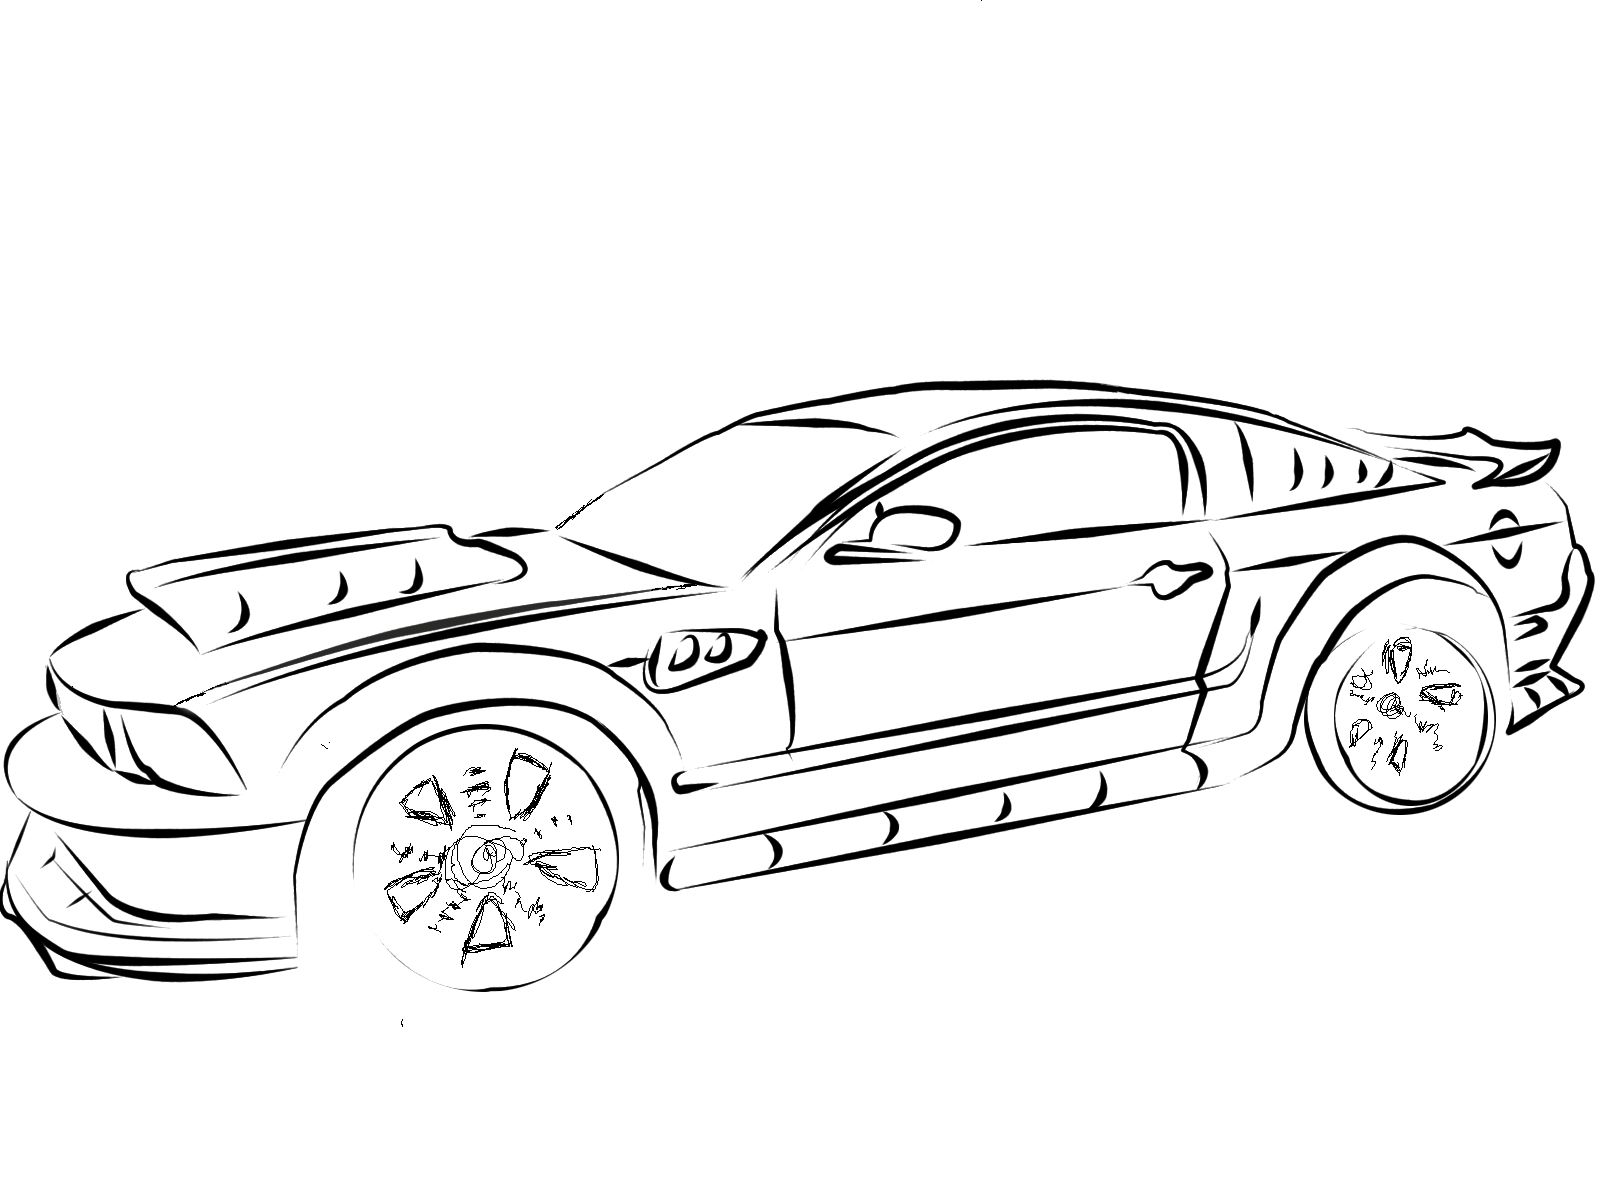 model t car ford coloring pages ford f150 1600x1200 ford flex custom paint wallpaper 1280x960